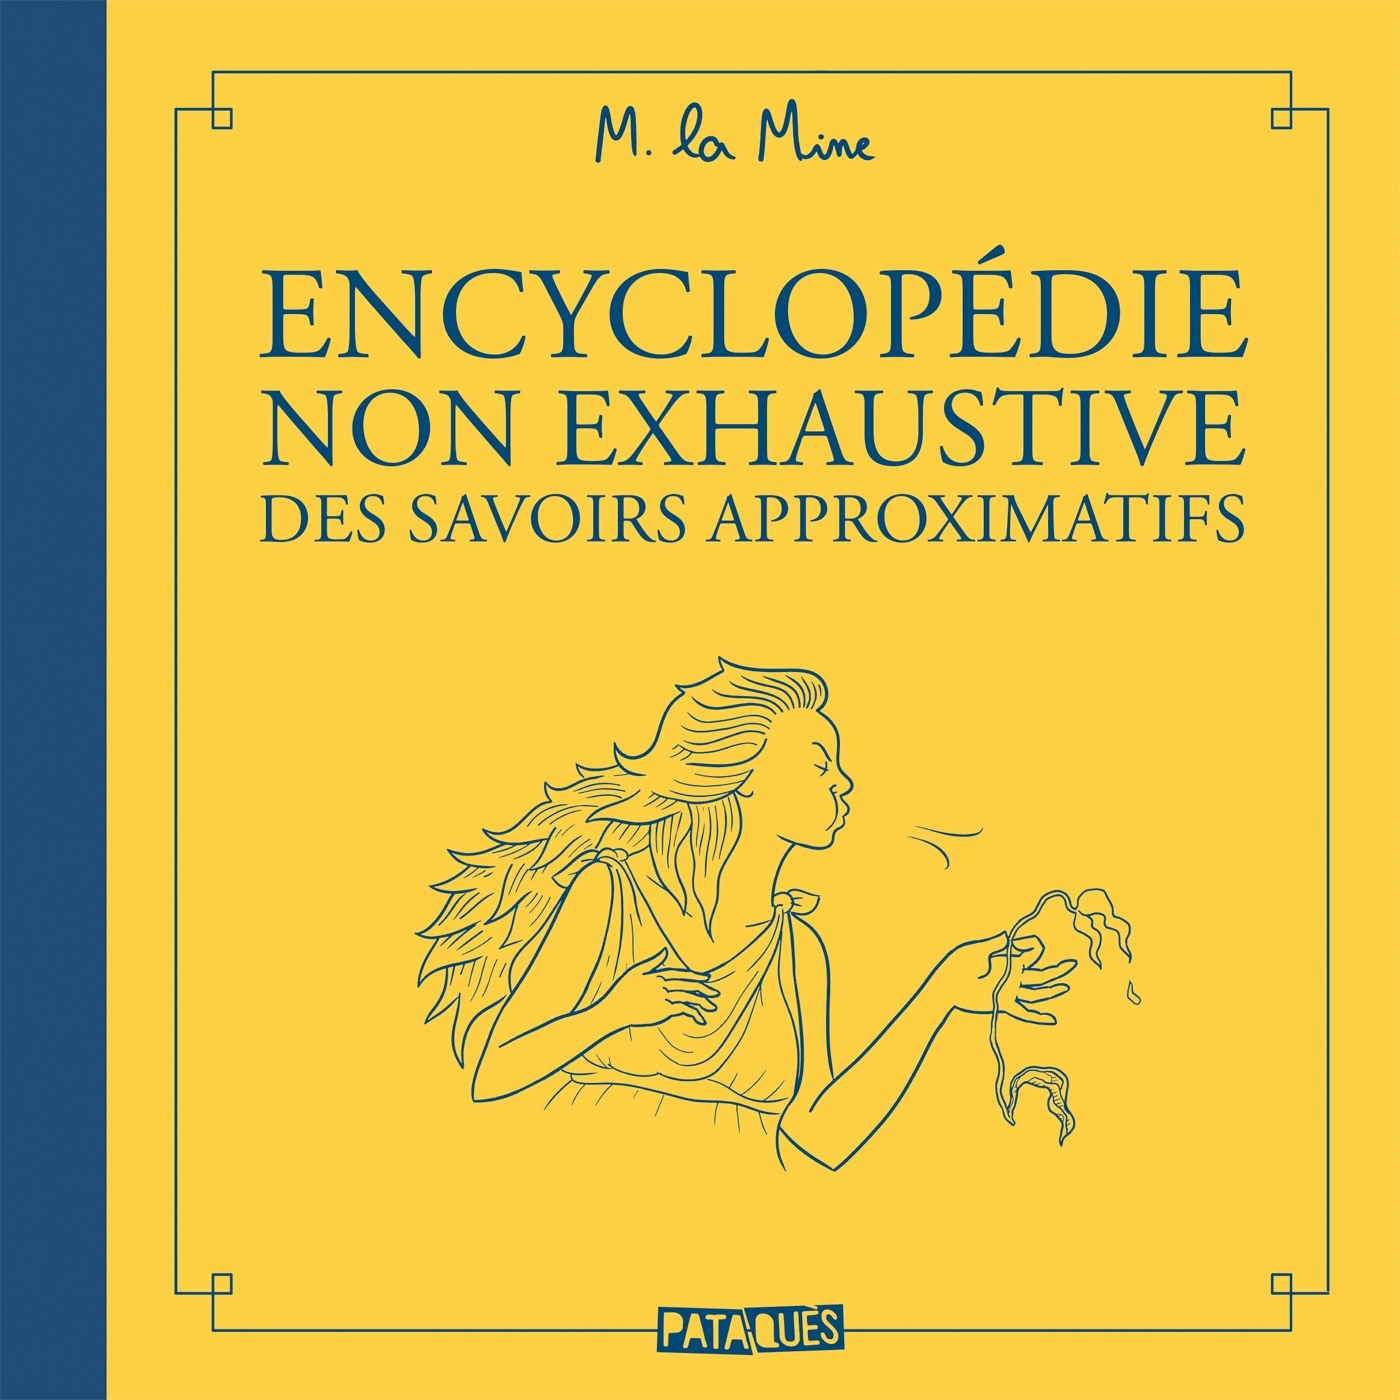 ENCYCLOPEDIE NON EXHAUSTIVES DES SAVOIRS APPROXIMATIFS